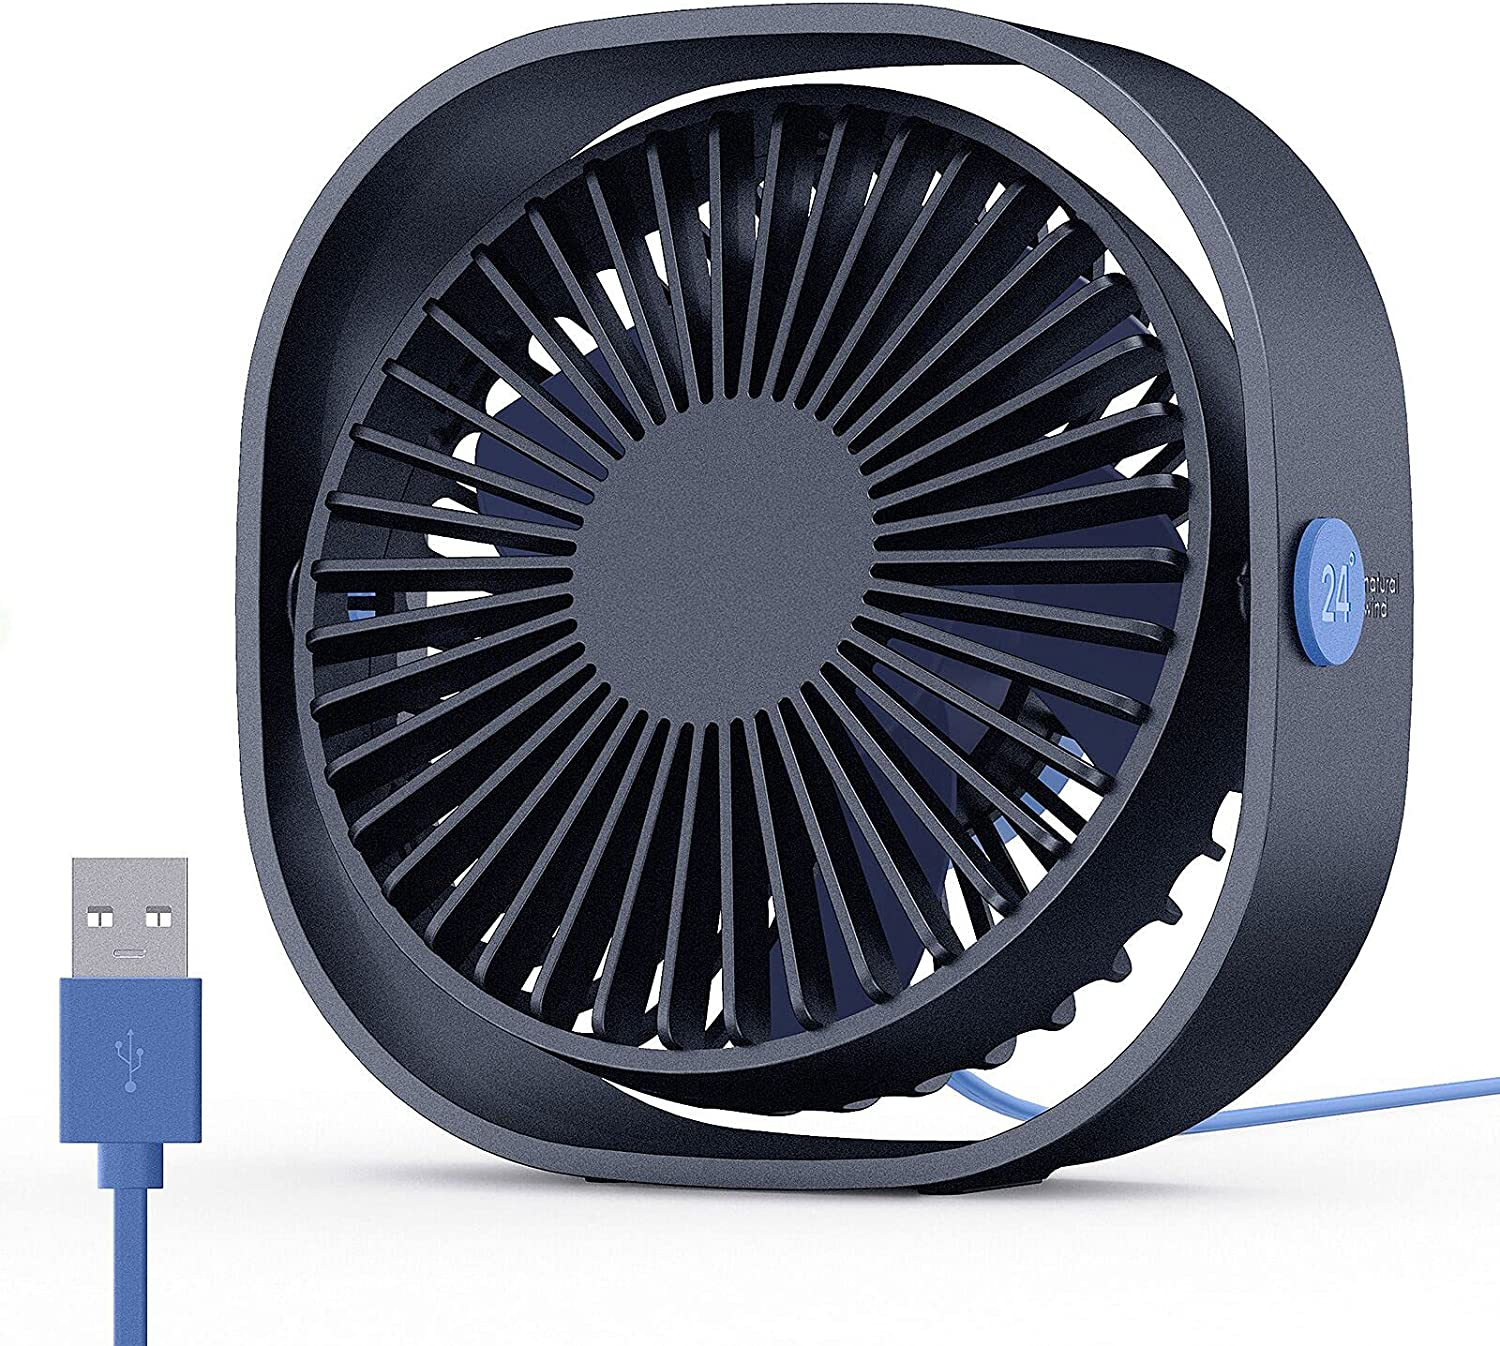 EasyAcc Small Personal USB Desk Fan,3 Speeds Portable Desktop Table Cooling Fan Powered by USB,Strong Wind,Quiet Operation,for Home Office Car Outdoor Travel (Navy Blue)